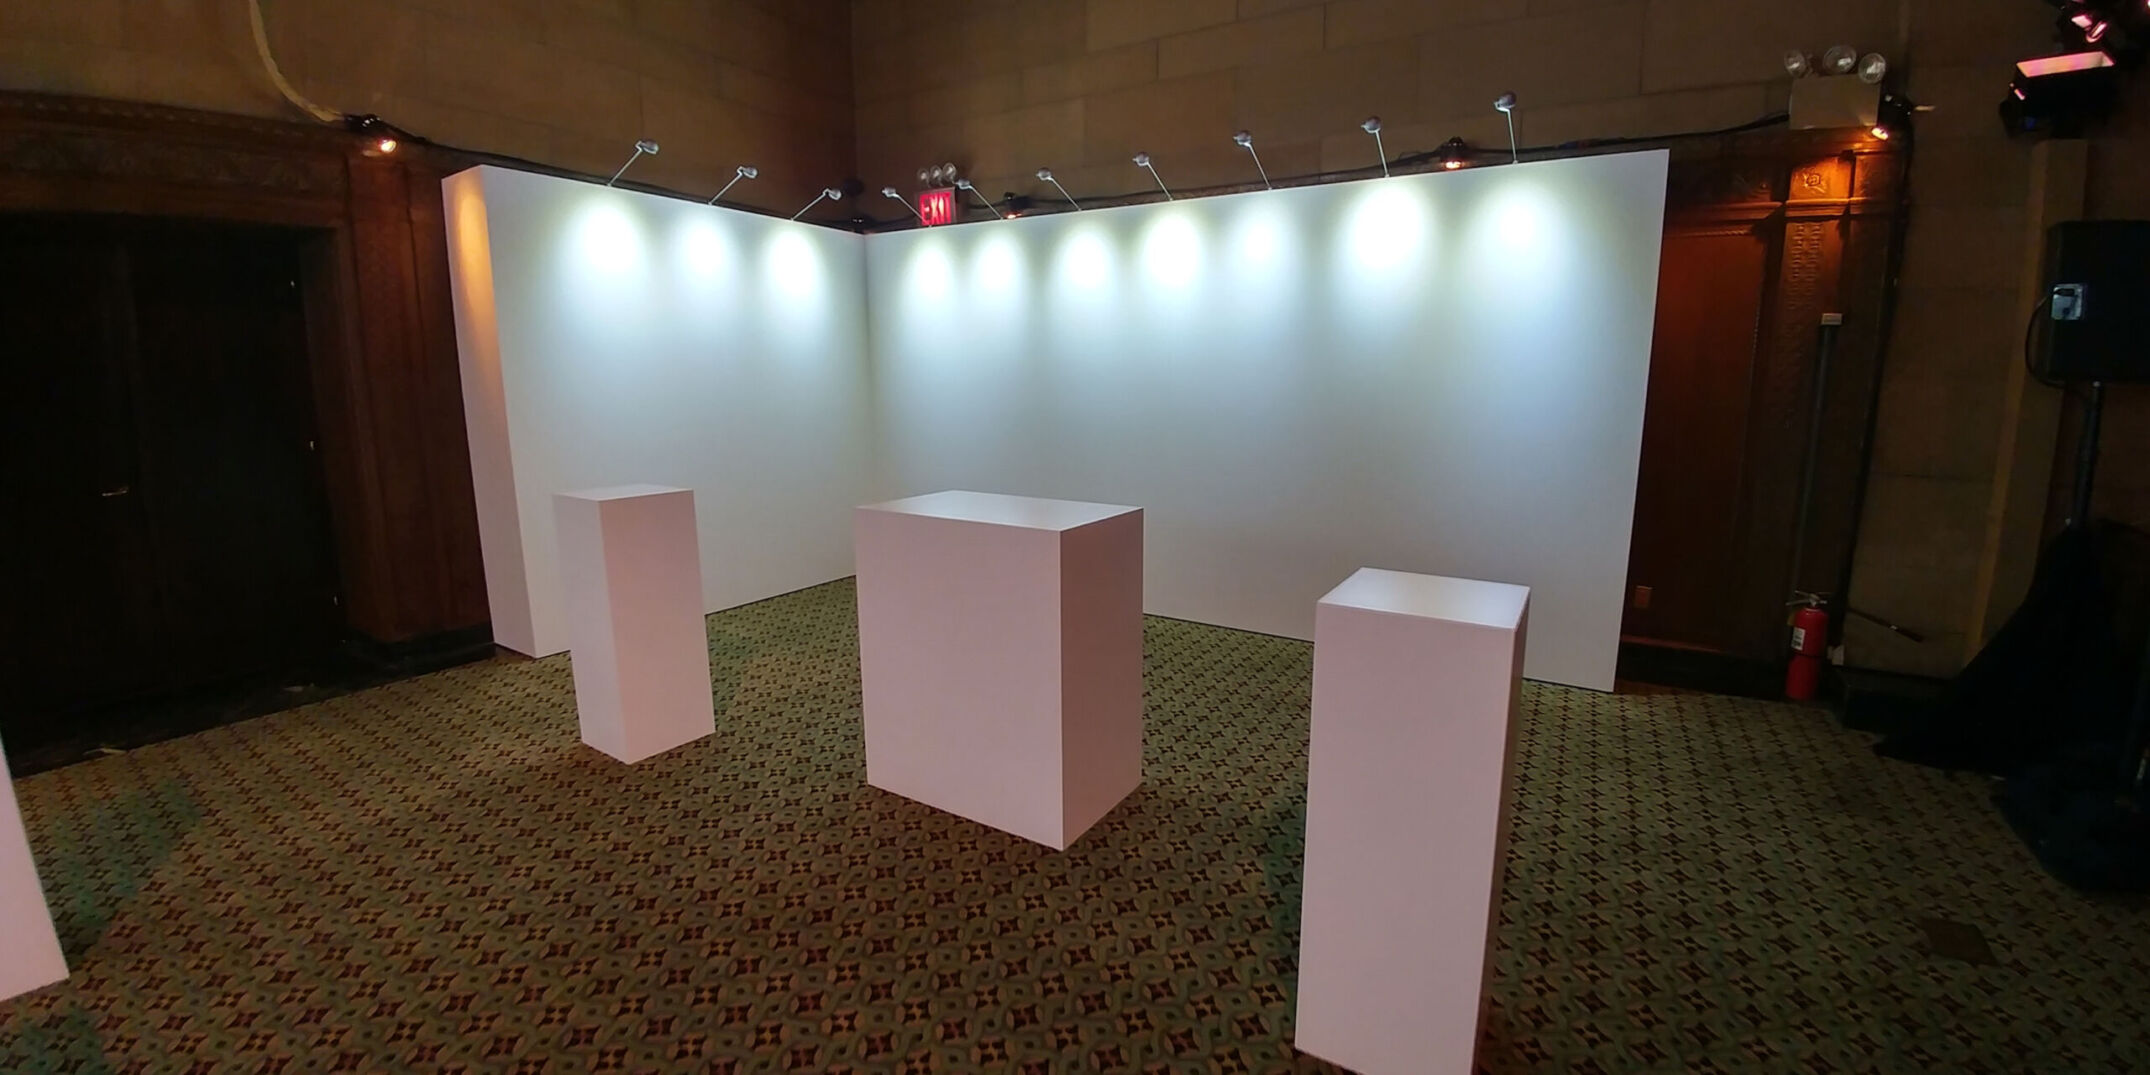 Rental gallery walls and pedestals with stem lights